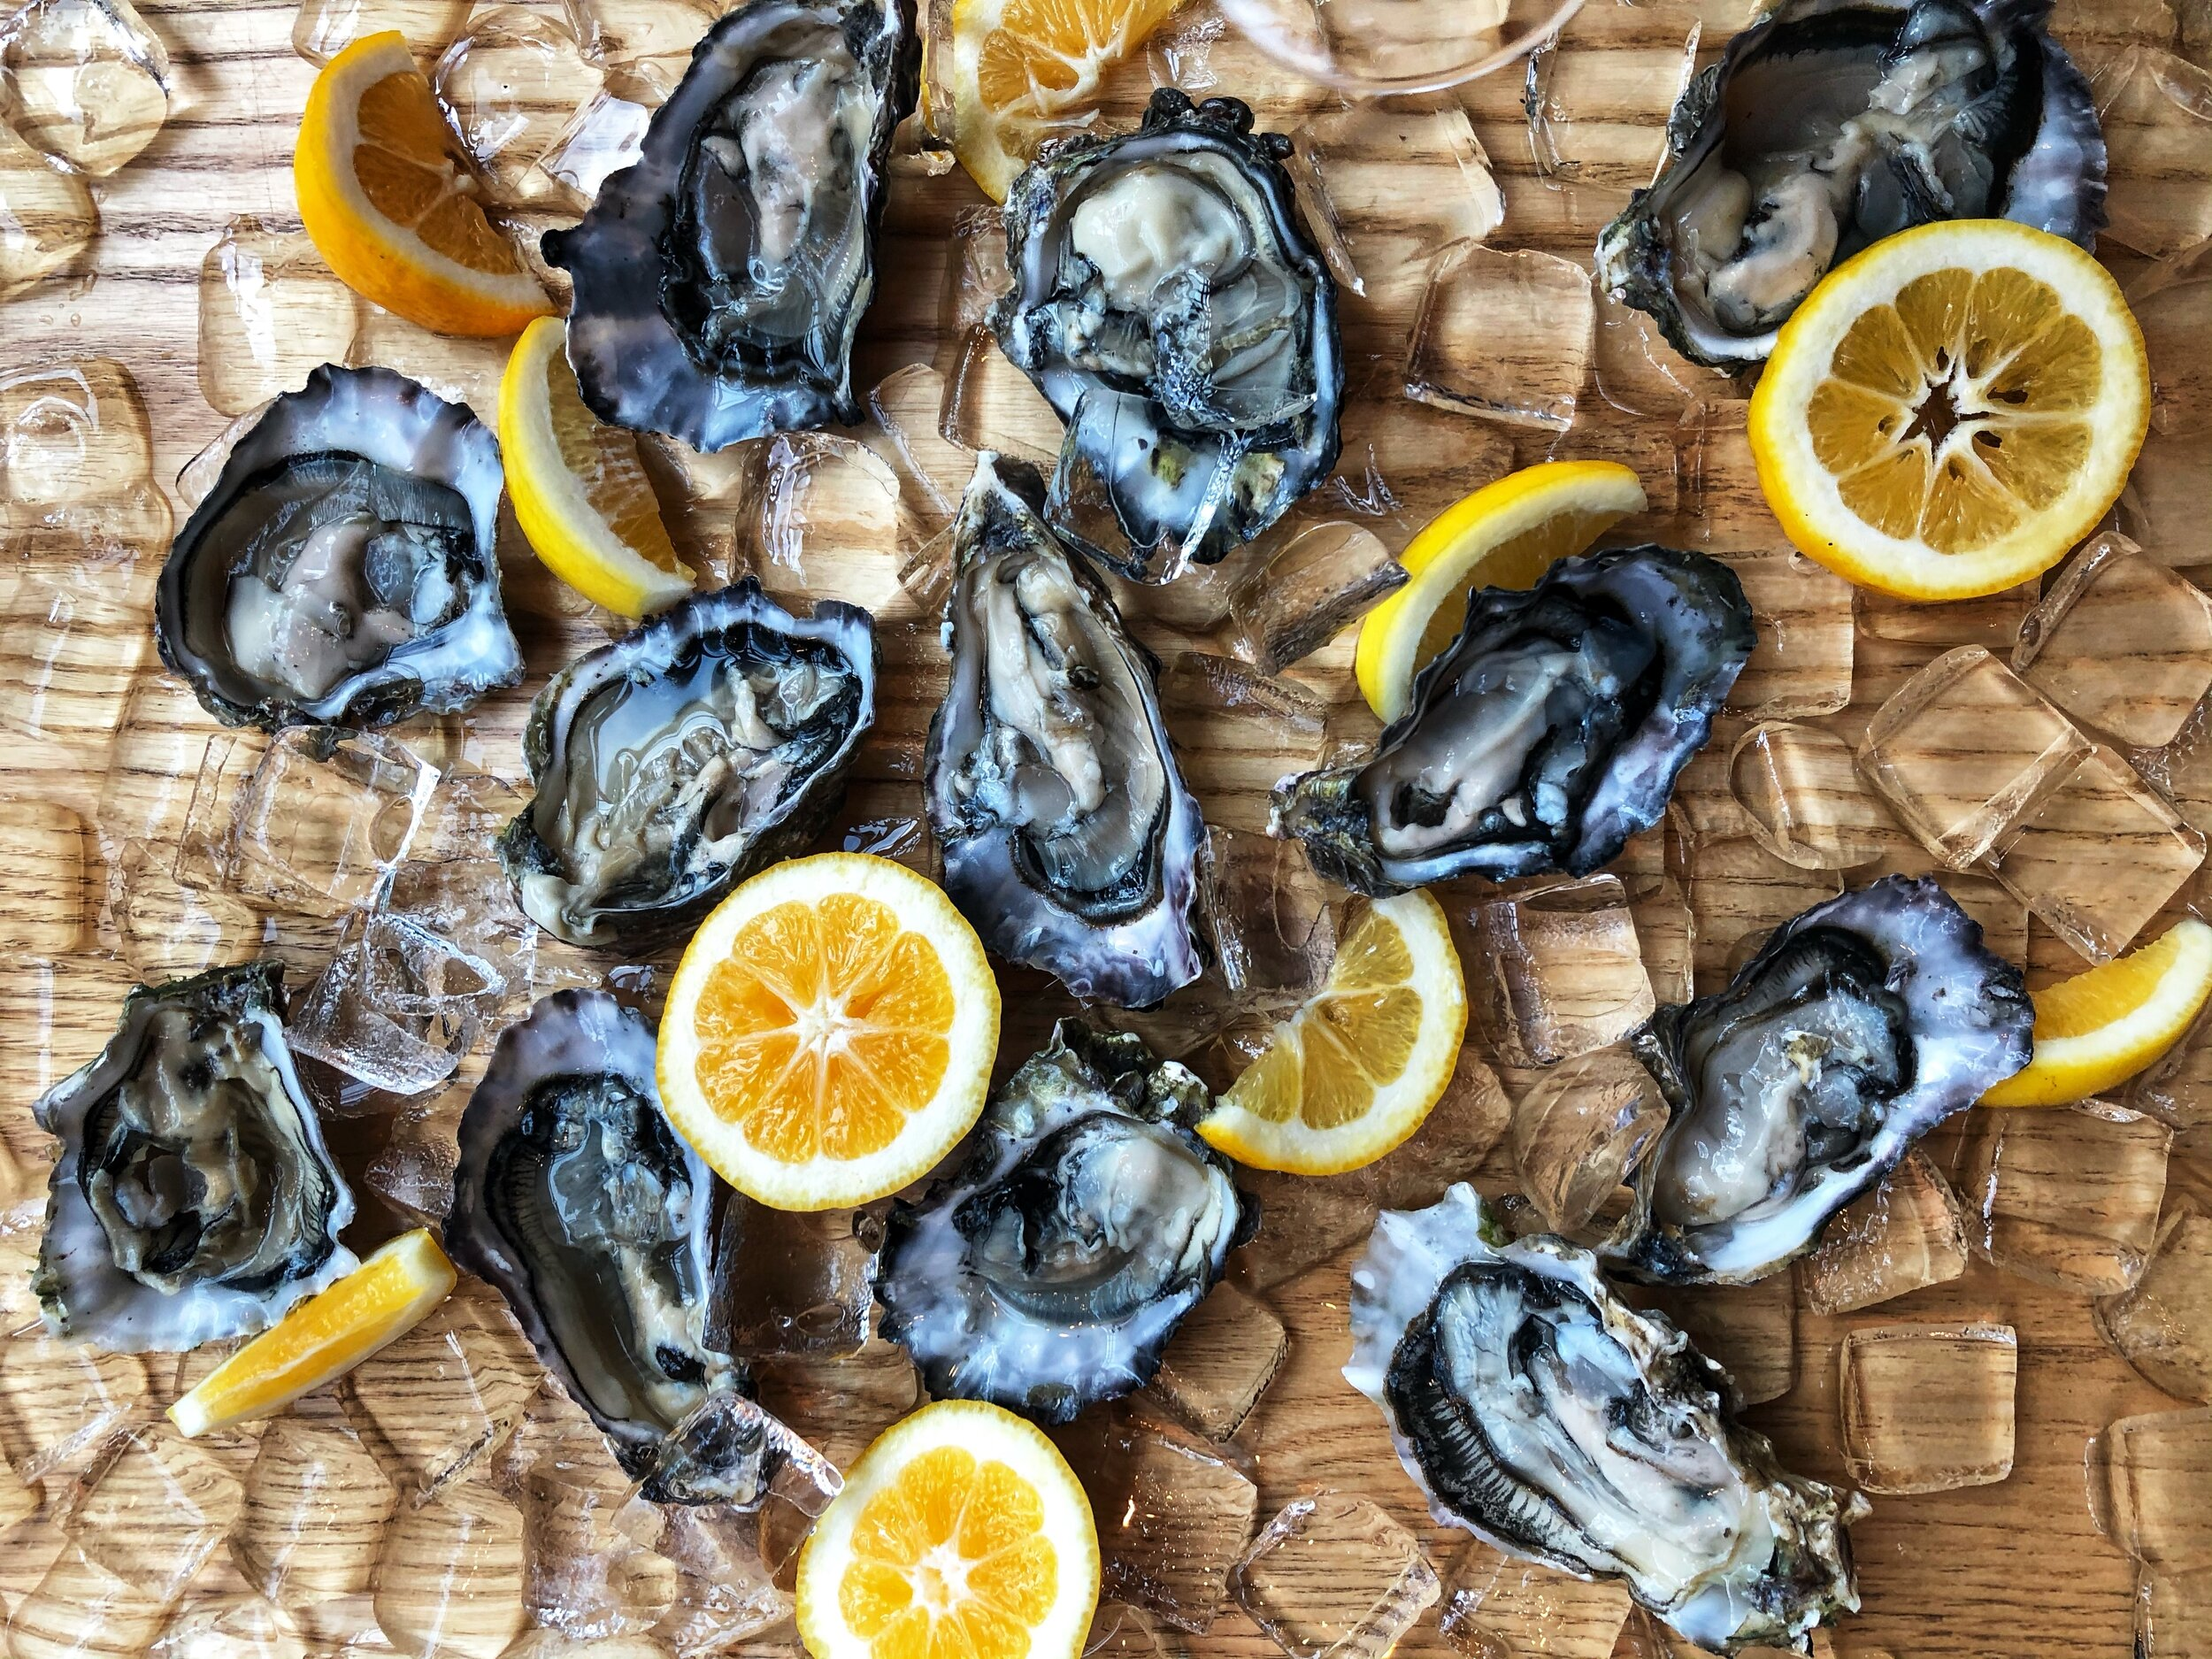 Champagne & oysters in Two Grey